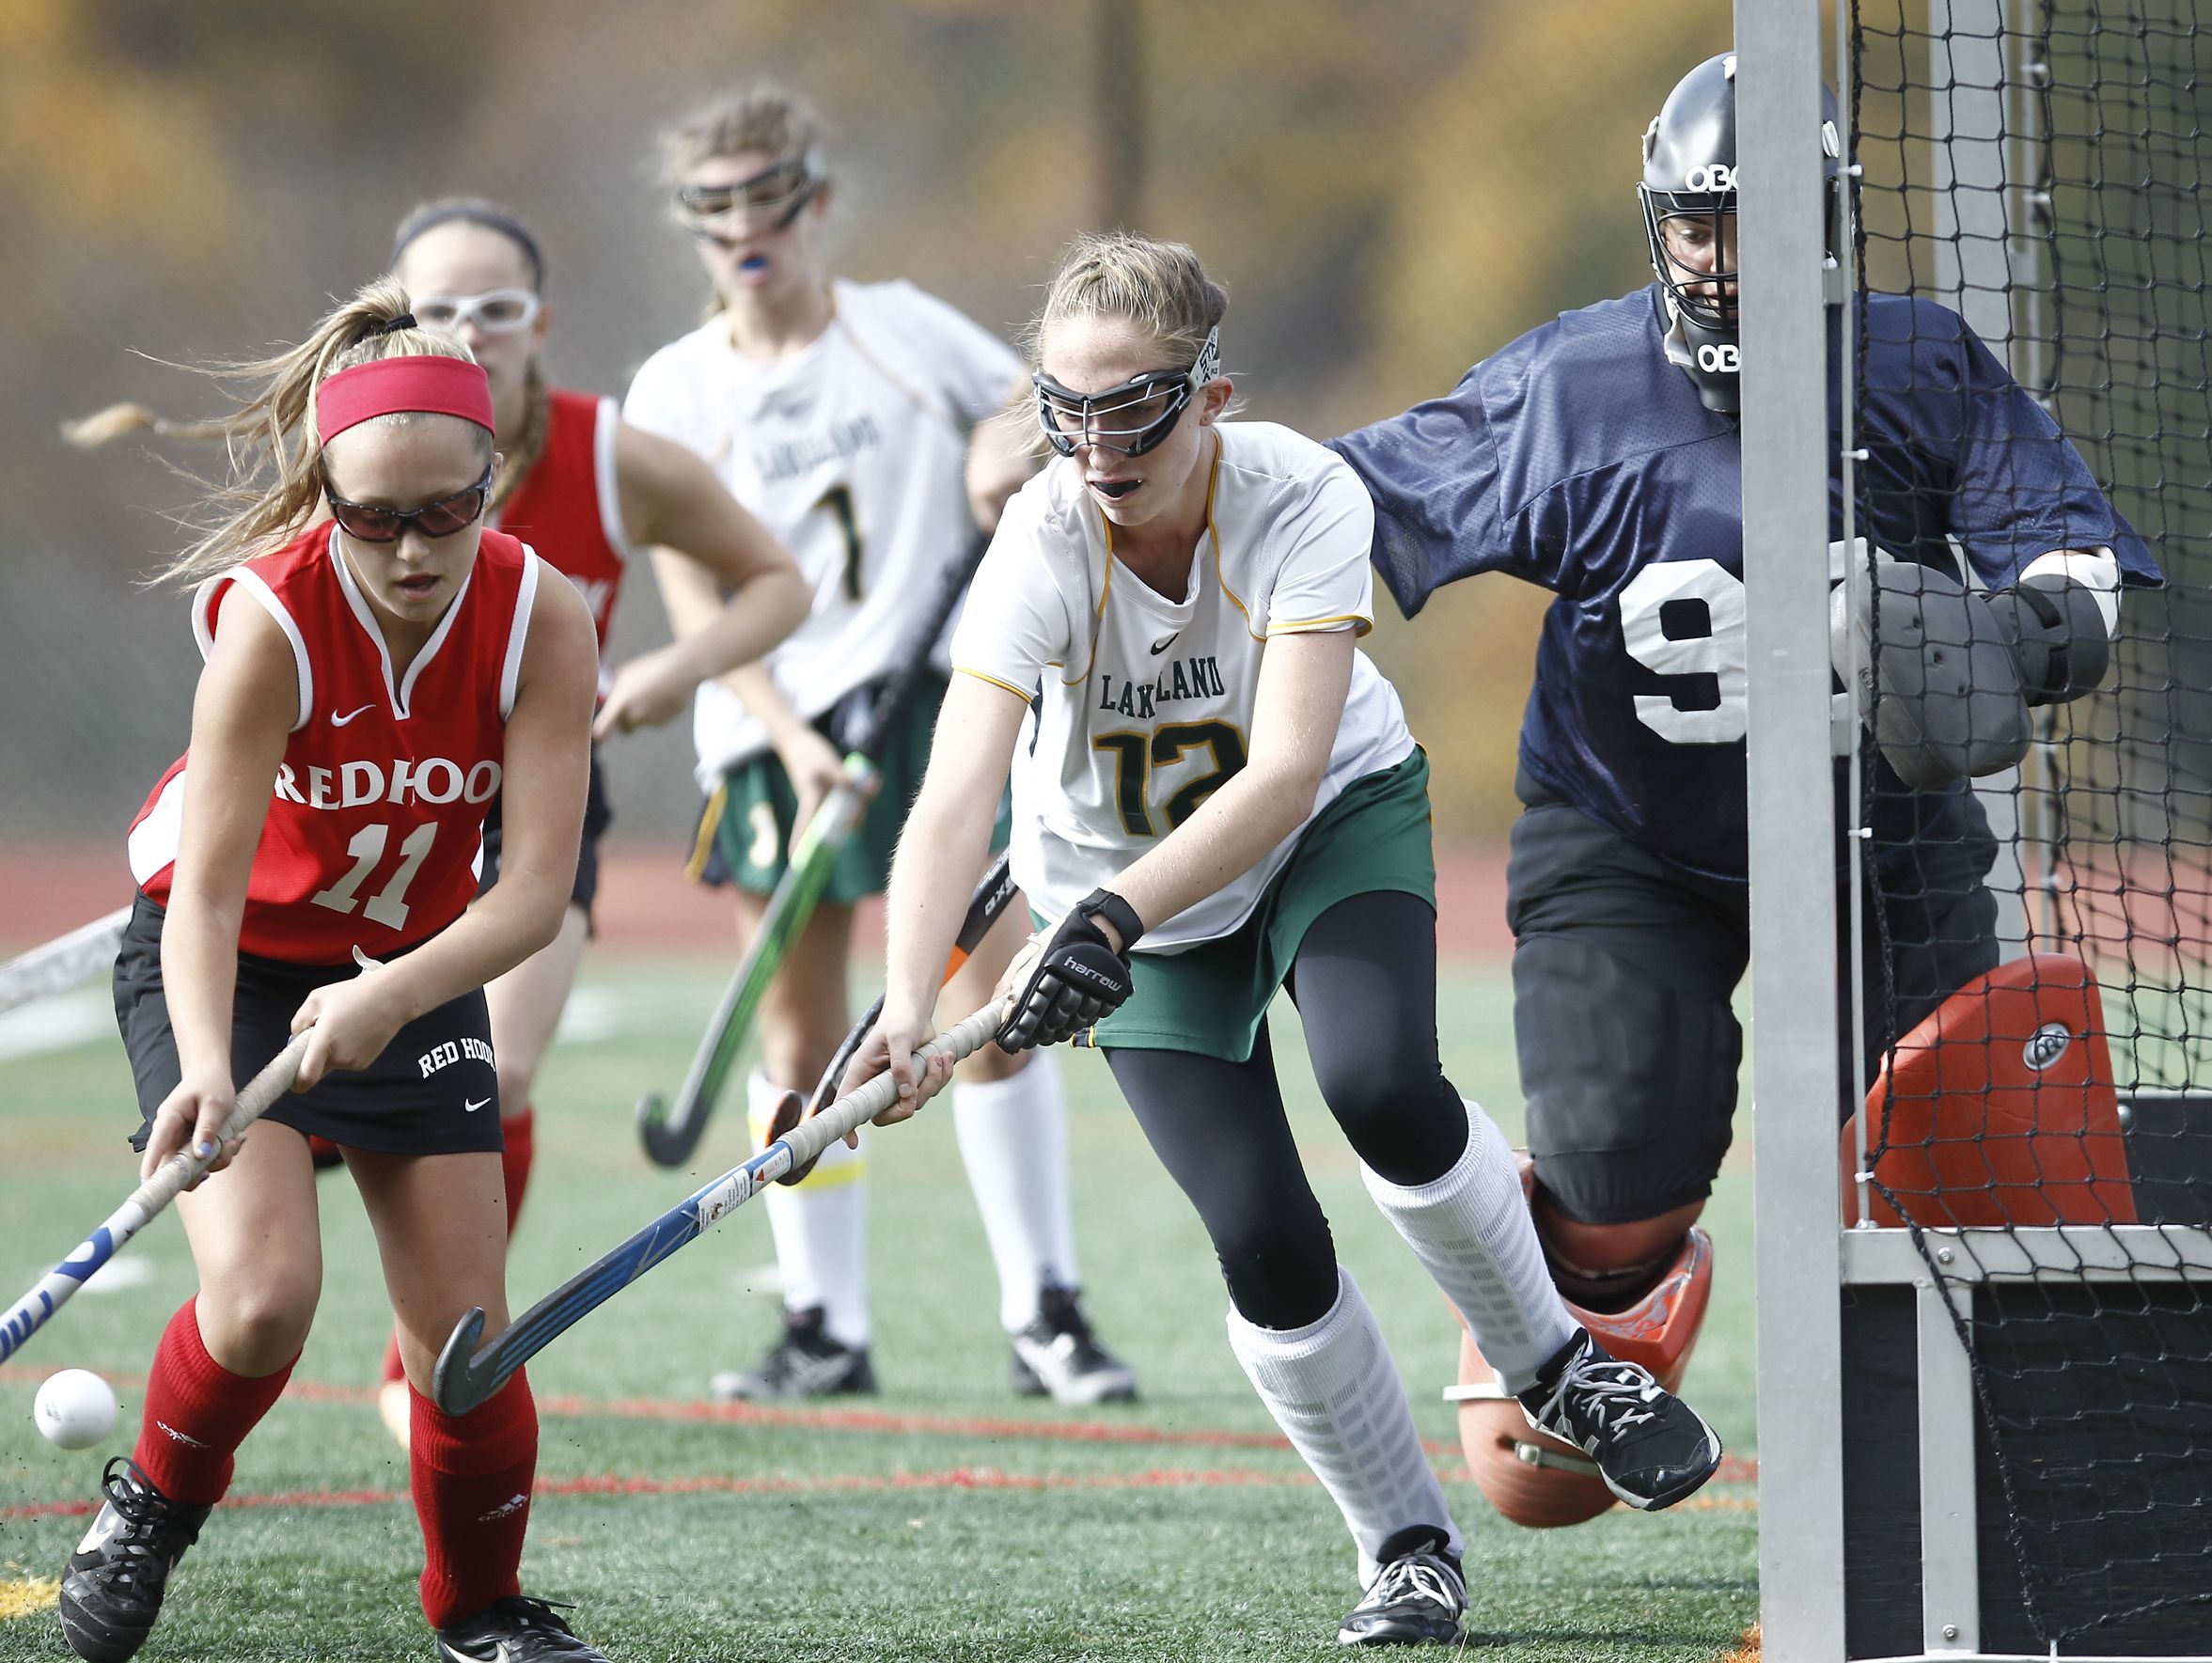 Lakeland's Lindsay Palmaffy (12) works foir a rebound in front of the goal during their 8-0 win over Red Hook in the Class B regional championship field hockey game at Valhalla High School on Saturday, November 5, 2016.